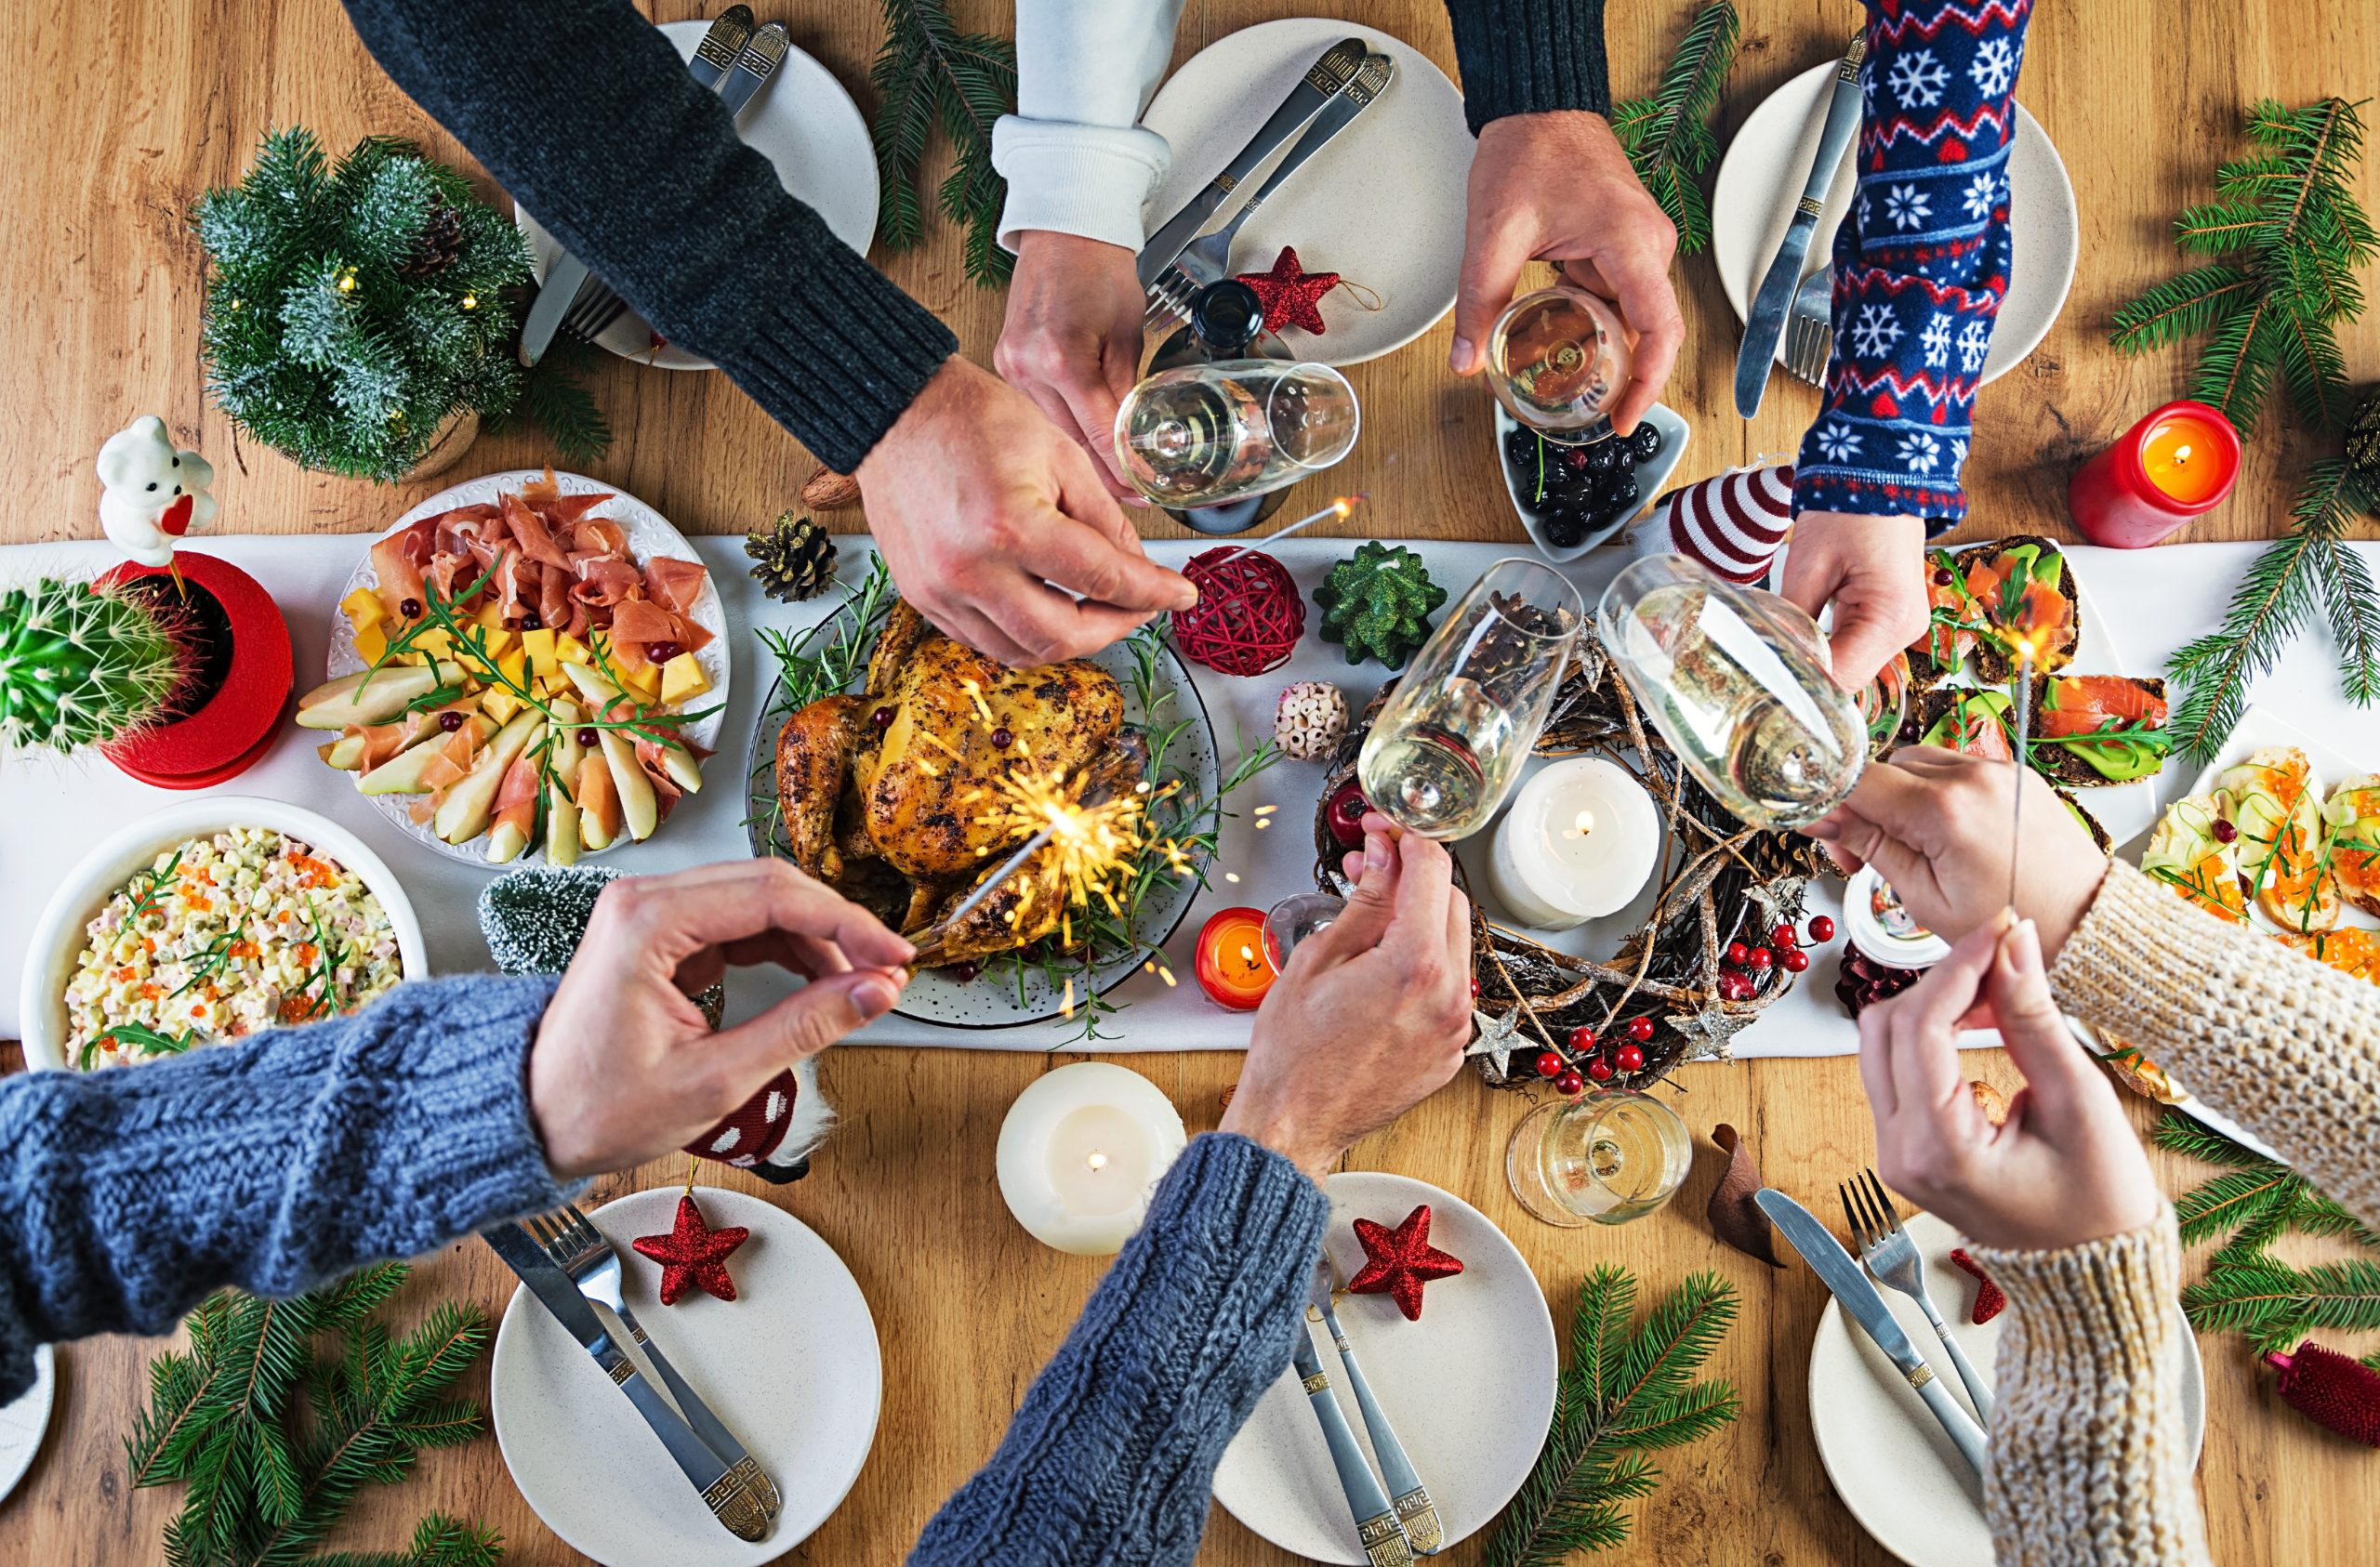 Cooking Party with the Chef: A Chef's Christmas